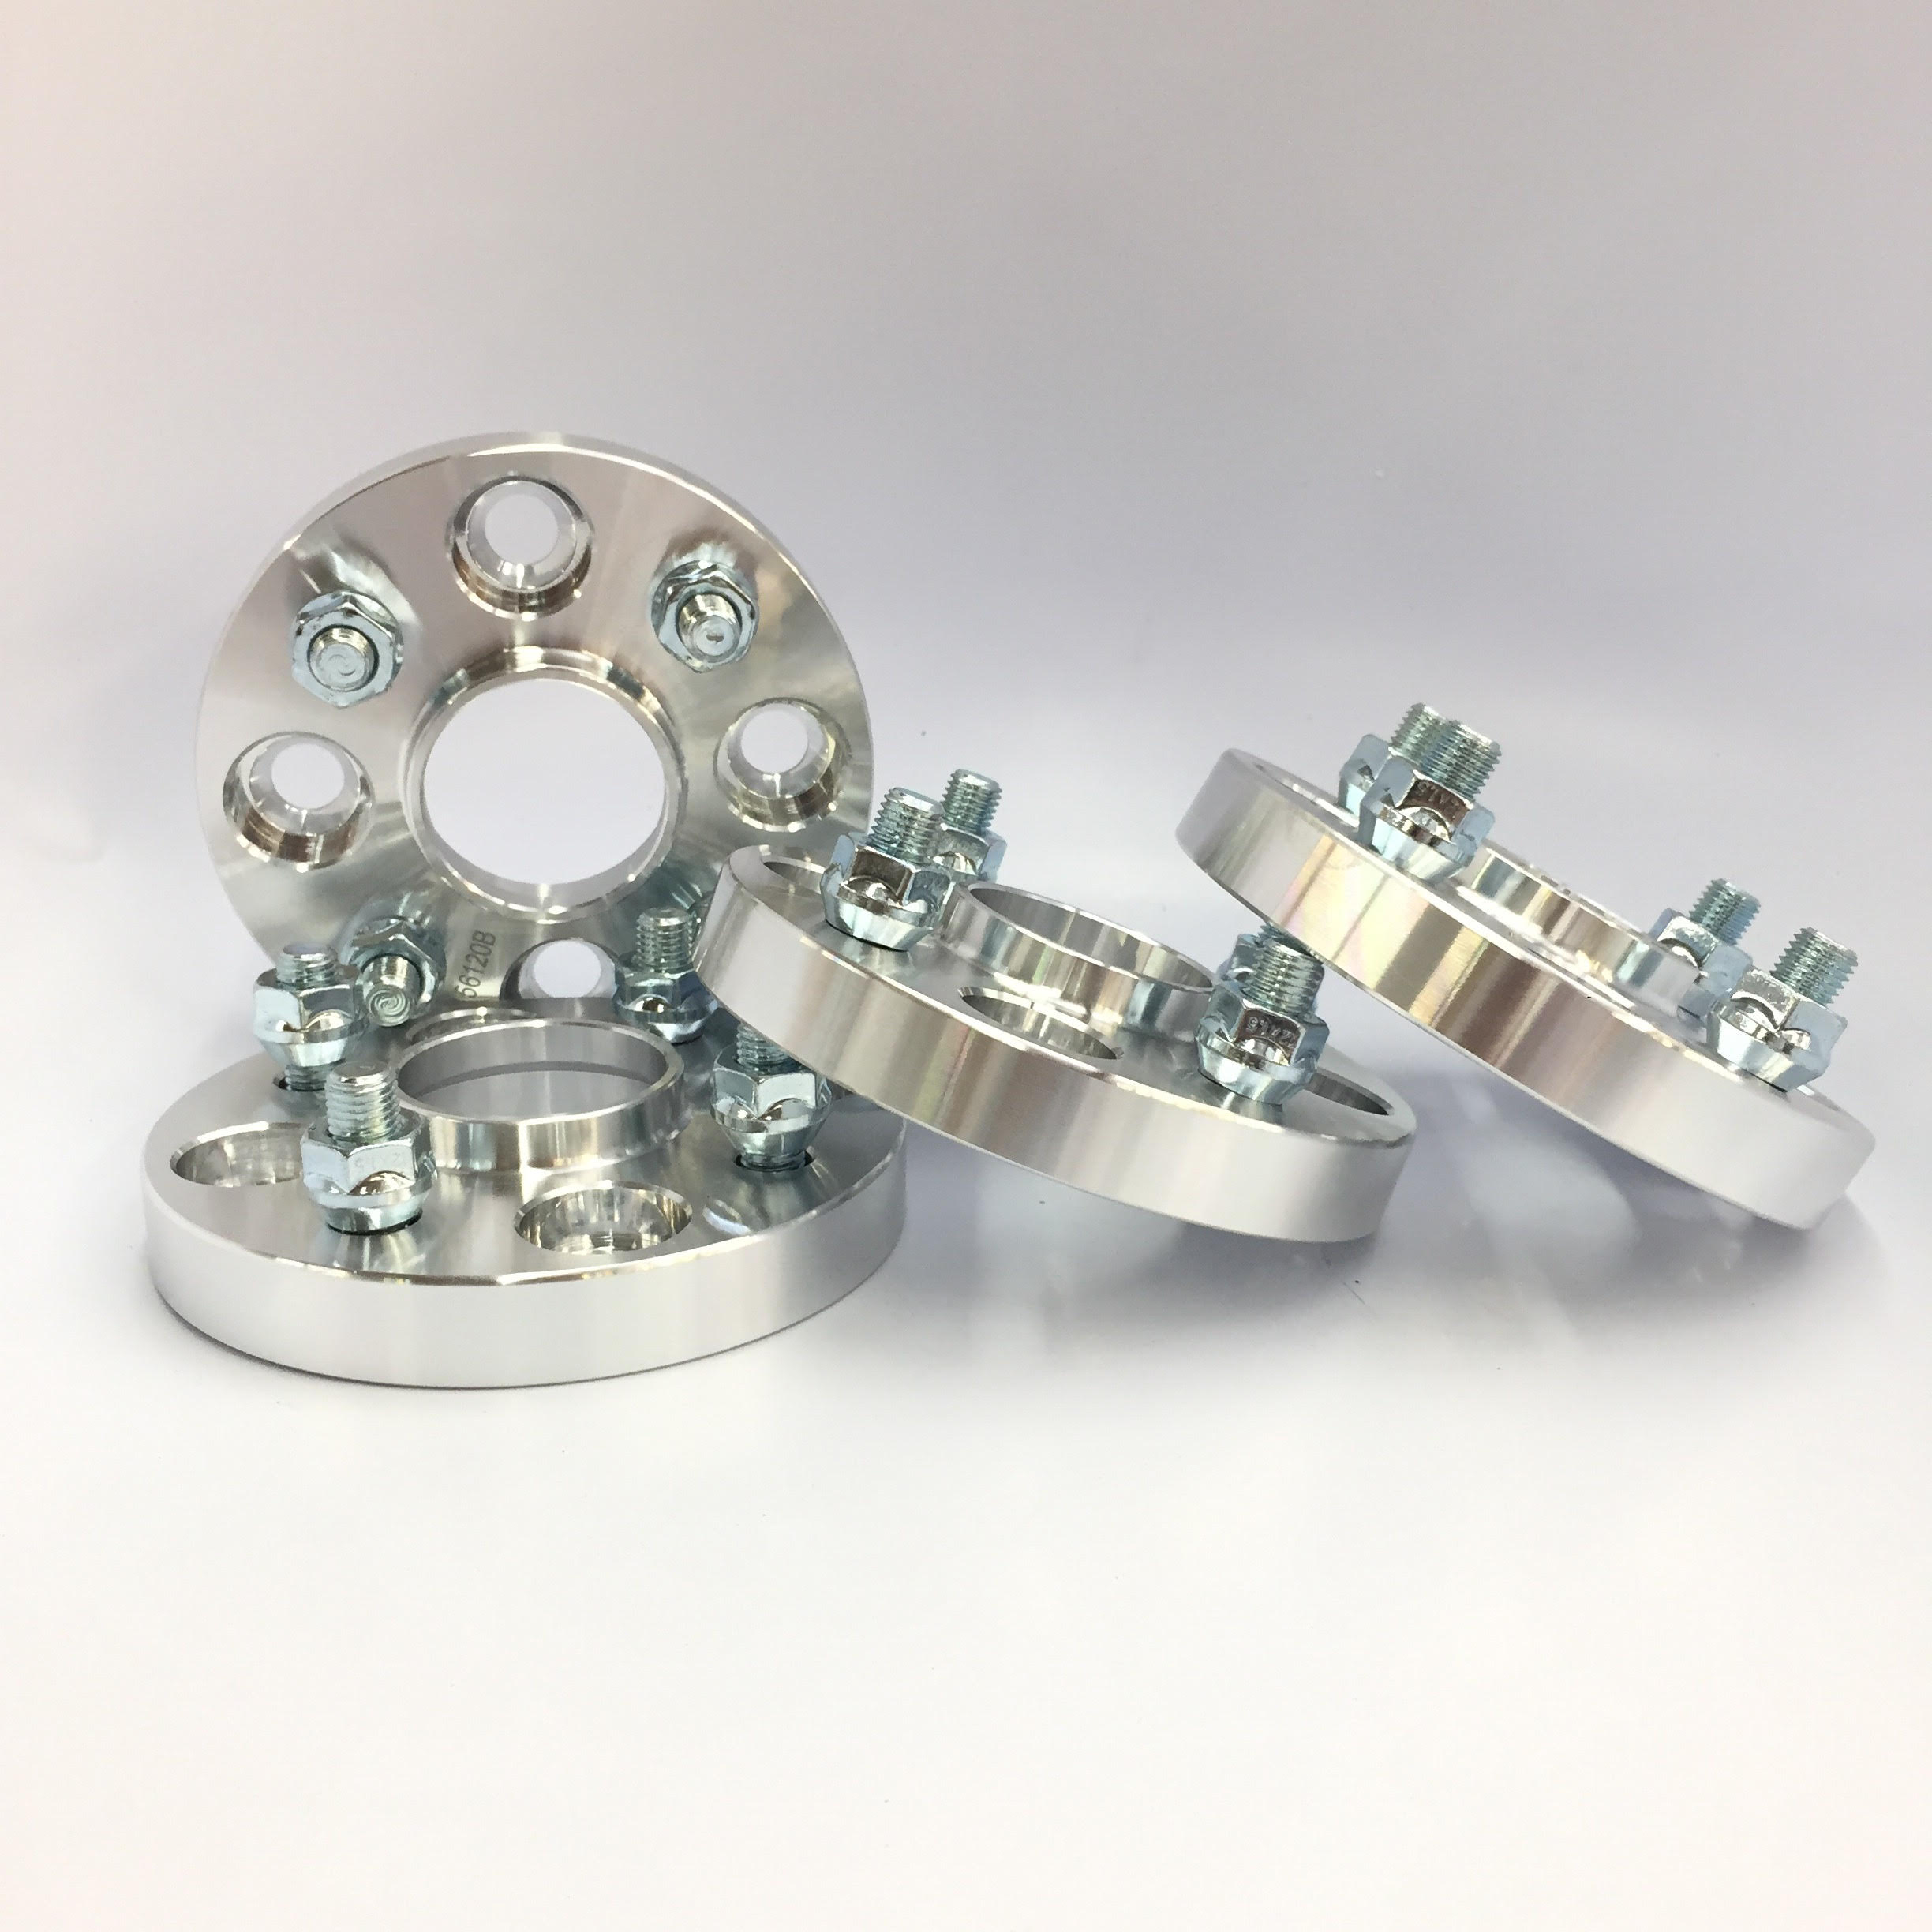 4X Hub Centric Wheel Spacers 4x100 57.1 CB 12X1.5 25MM 1 INCH